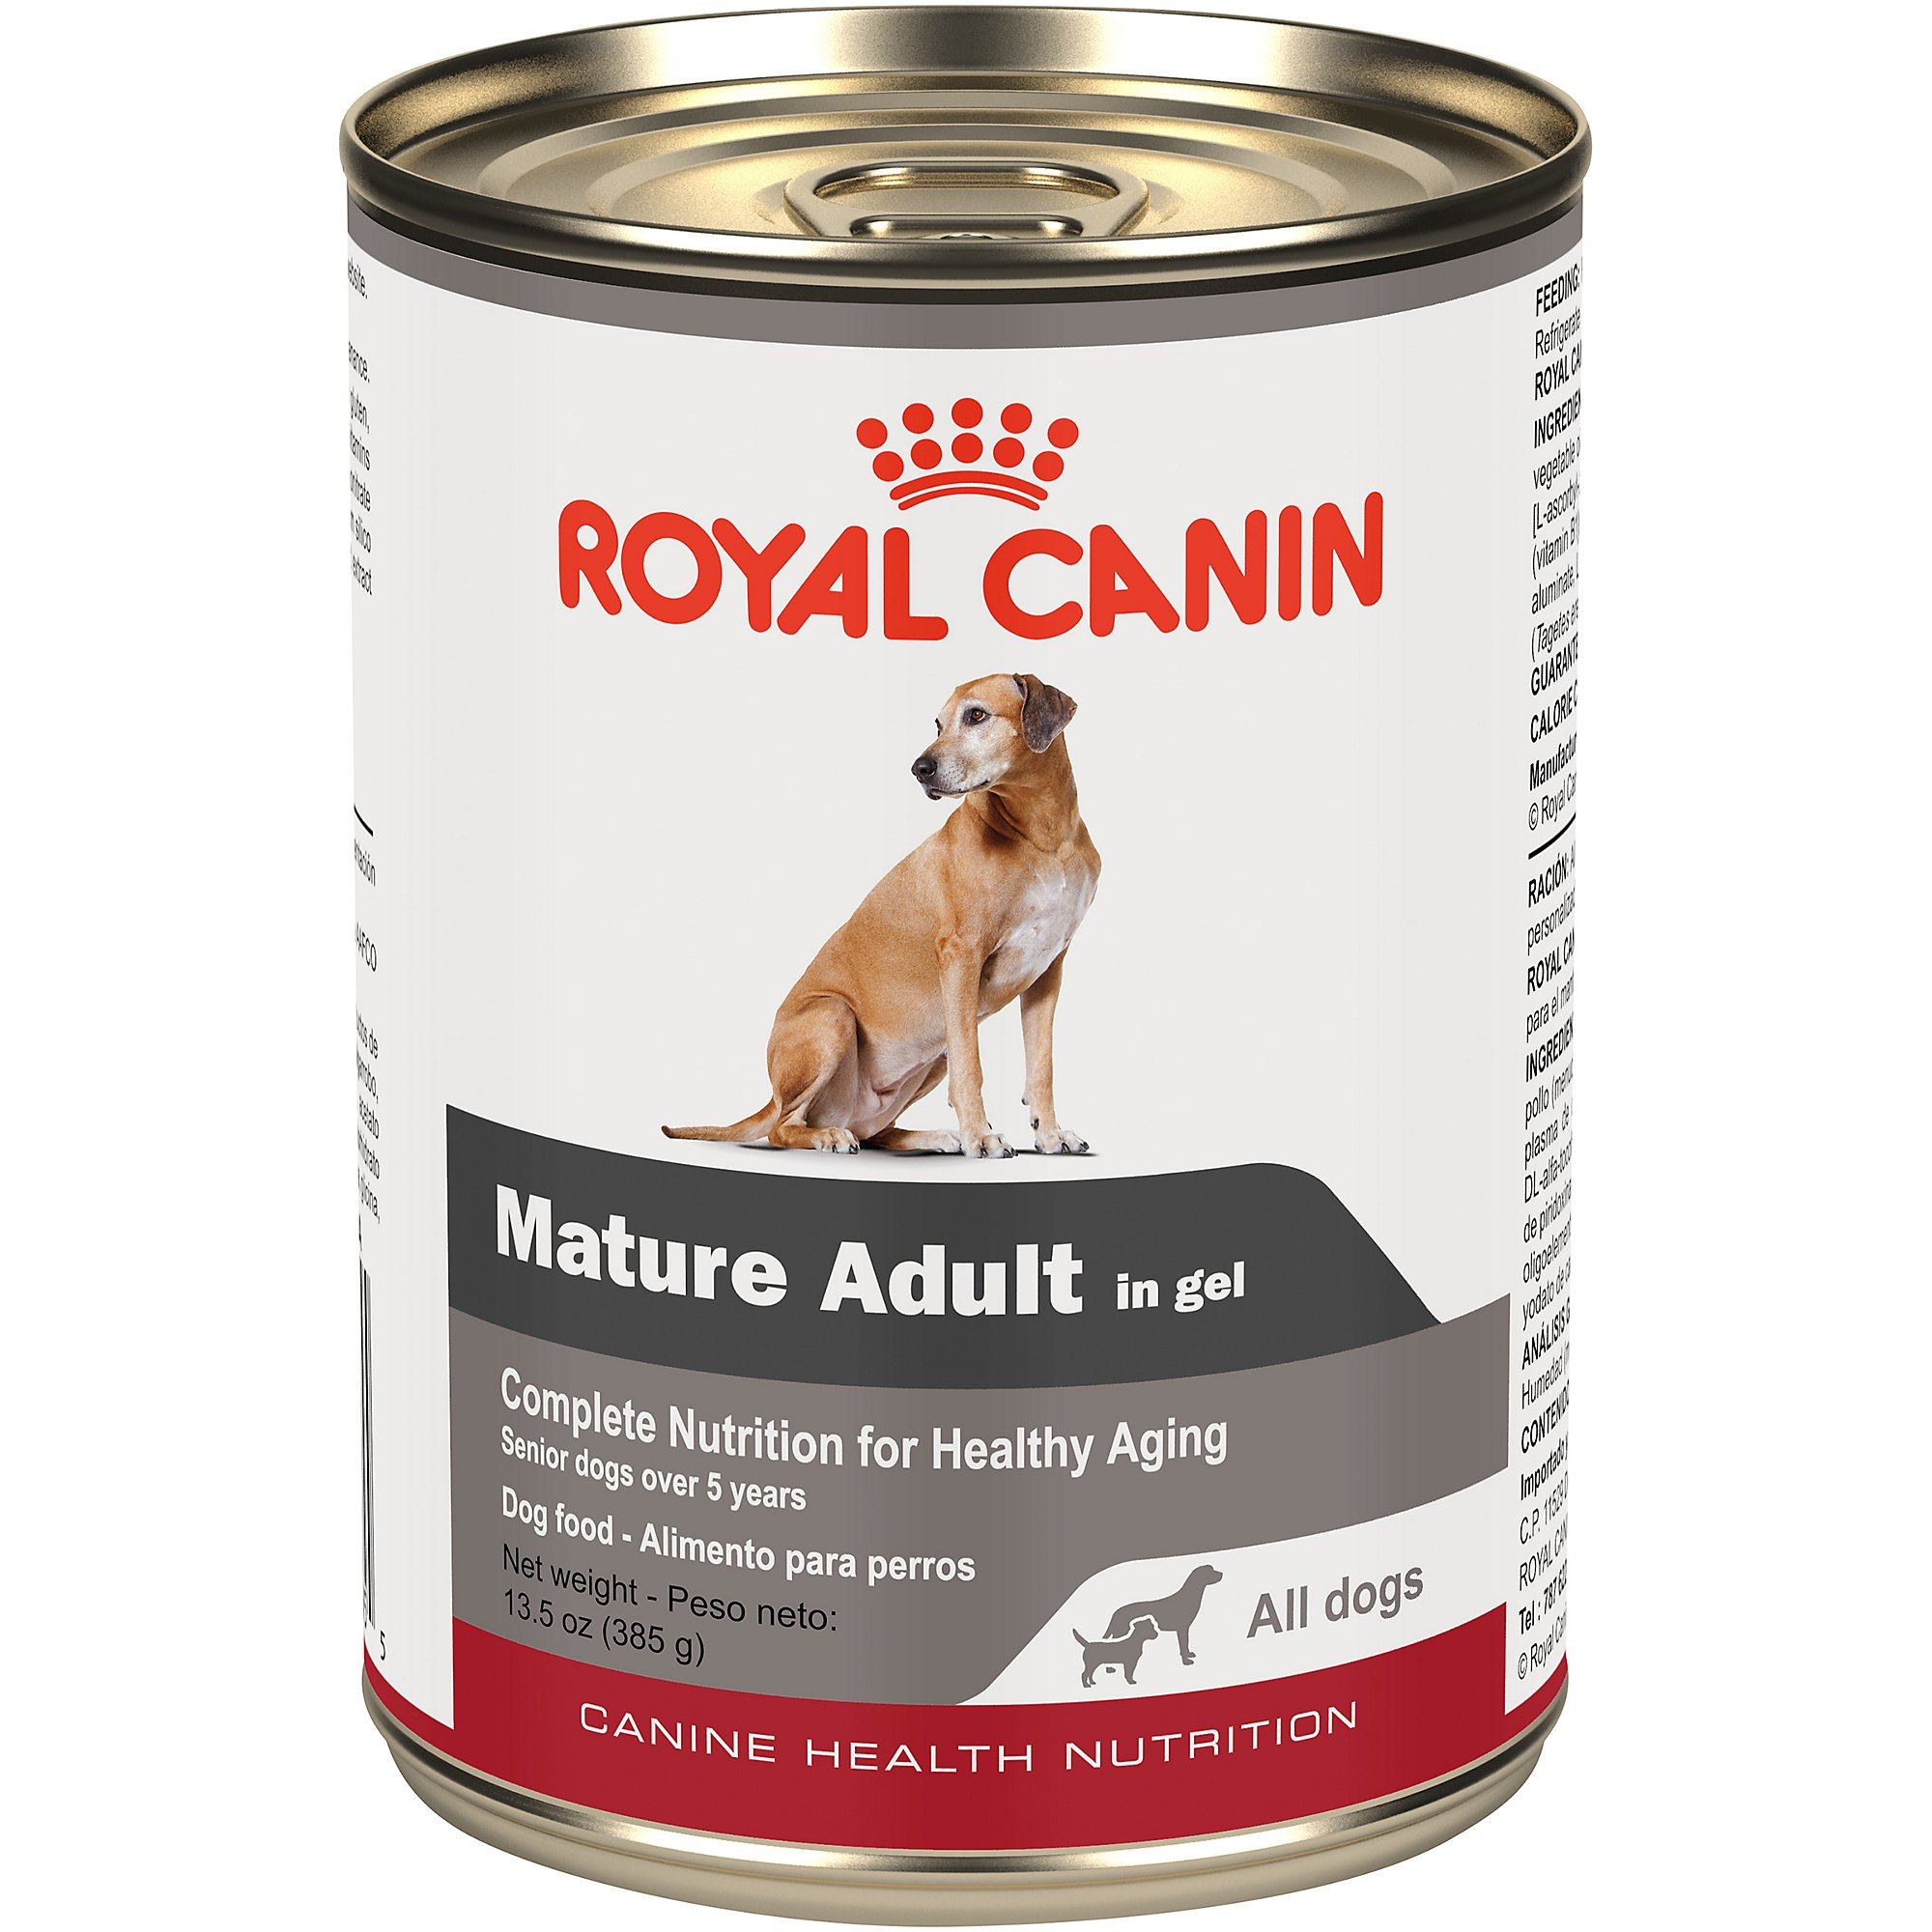 royal canin canine health nutrition senior canned dog food petco. Black Bedroom Furniture Sets. Home Design Ideas